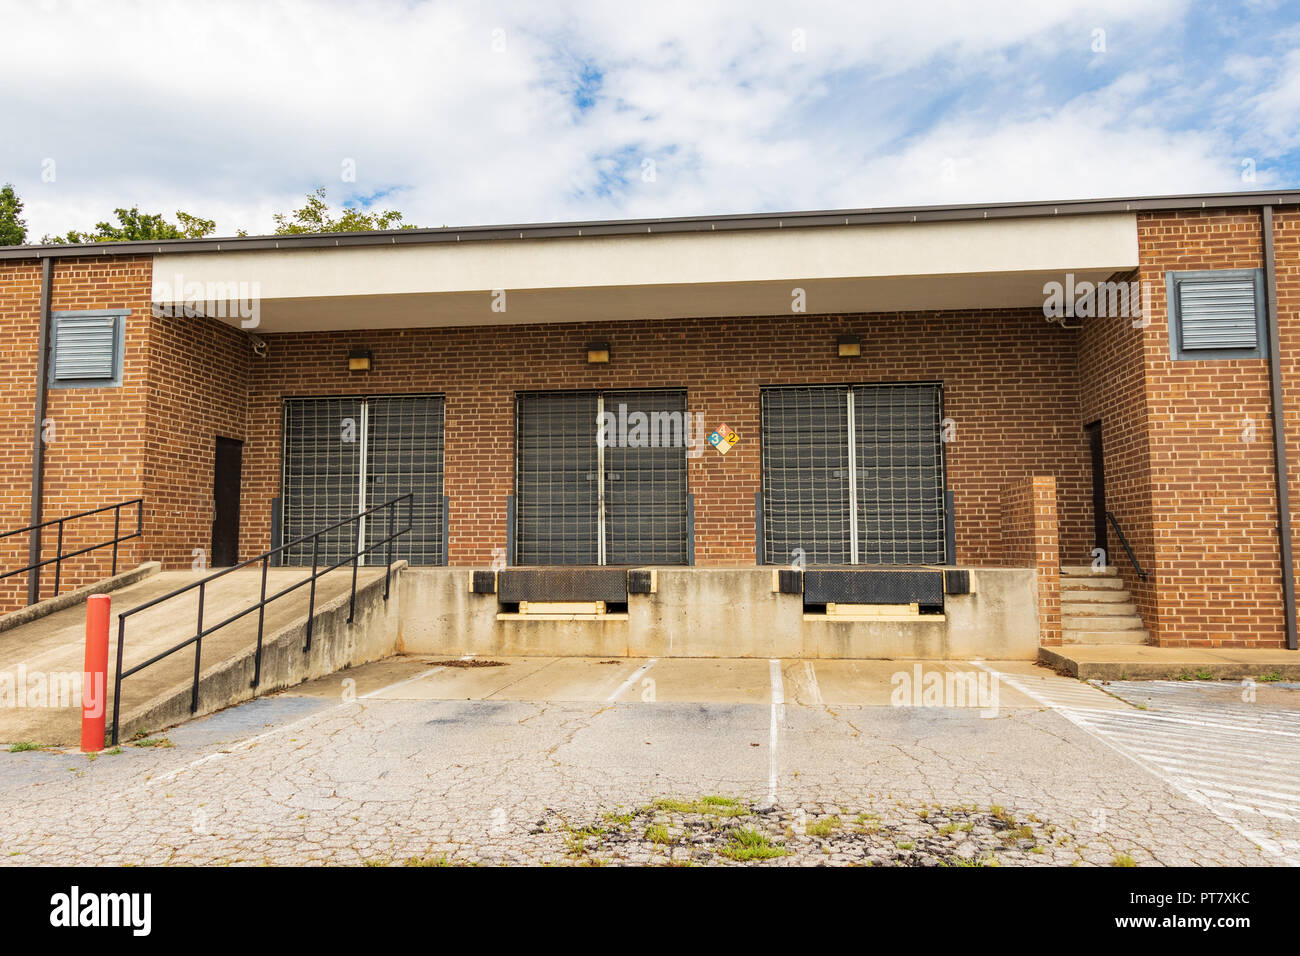 HICKORY, NC, USA-9/18/18:  A loading dock of an unoccupied industrial building. - Stock Image